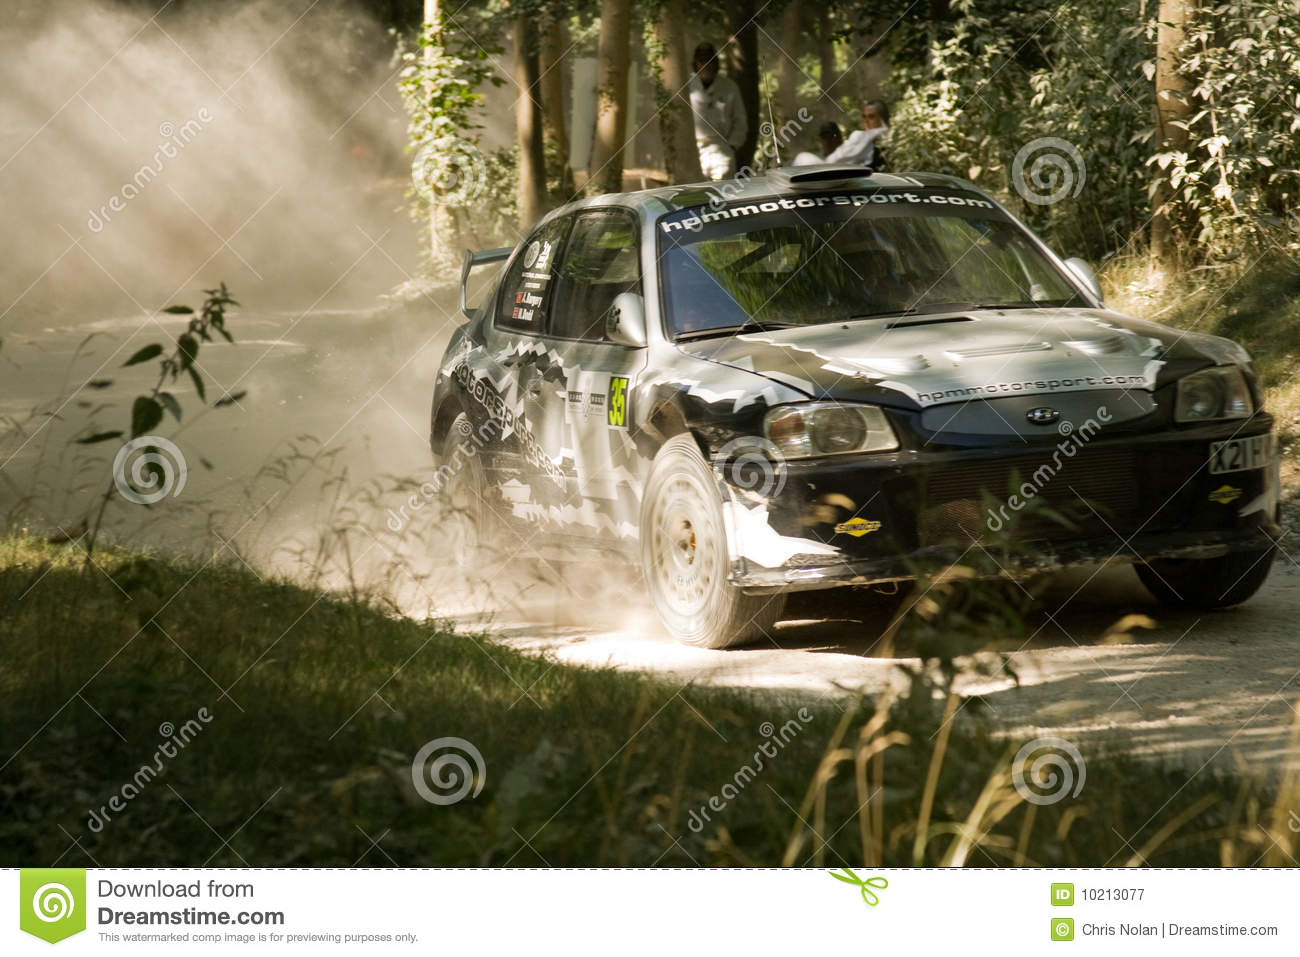 2003 Hyundai Accent Wrc Rally Car Editorial Photography Image Of